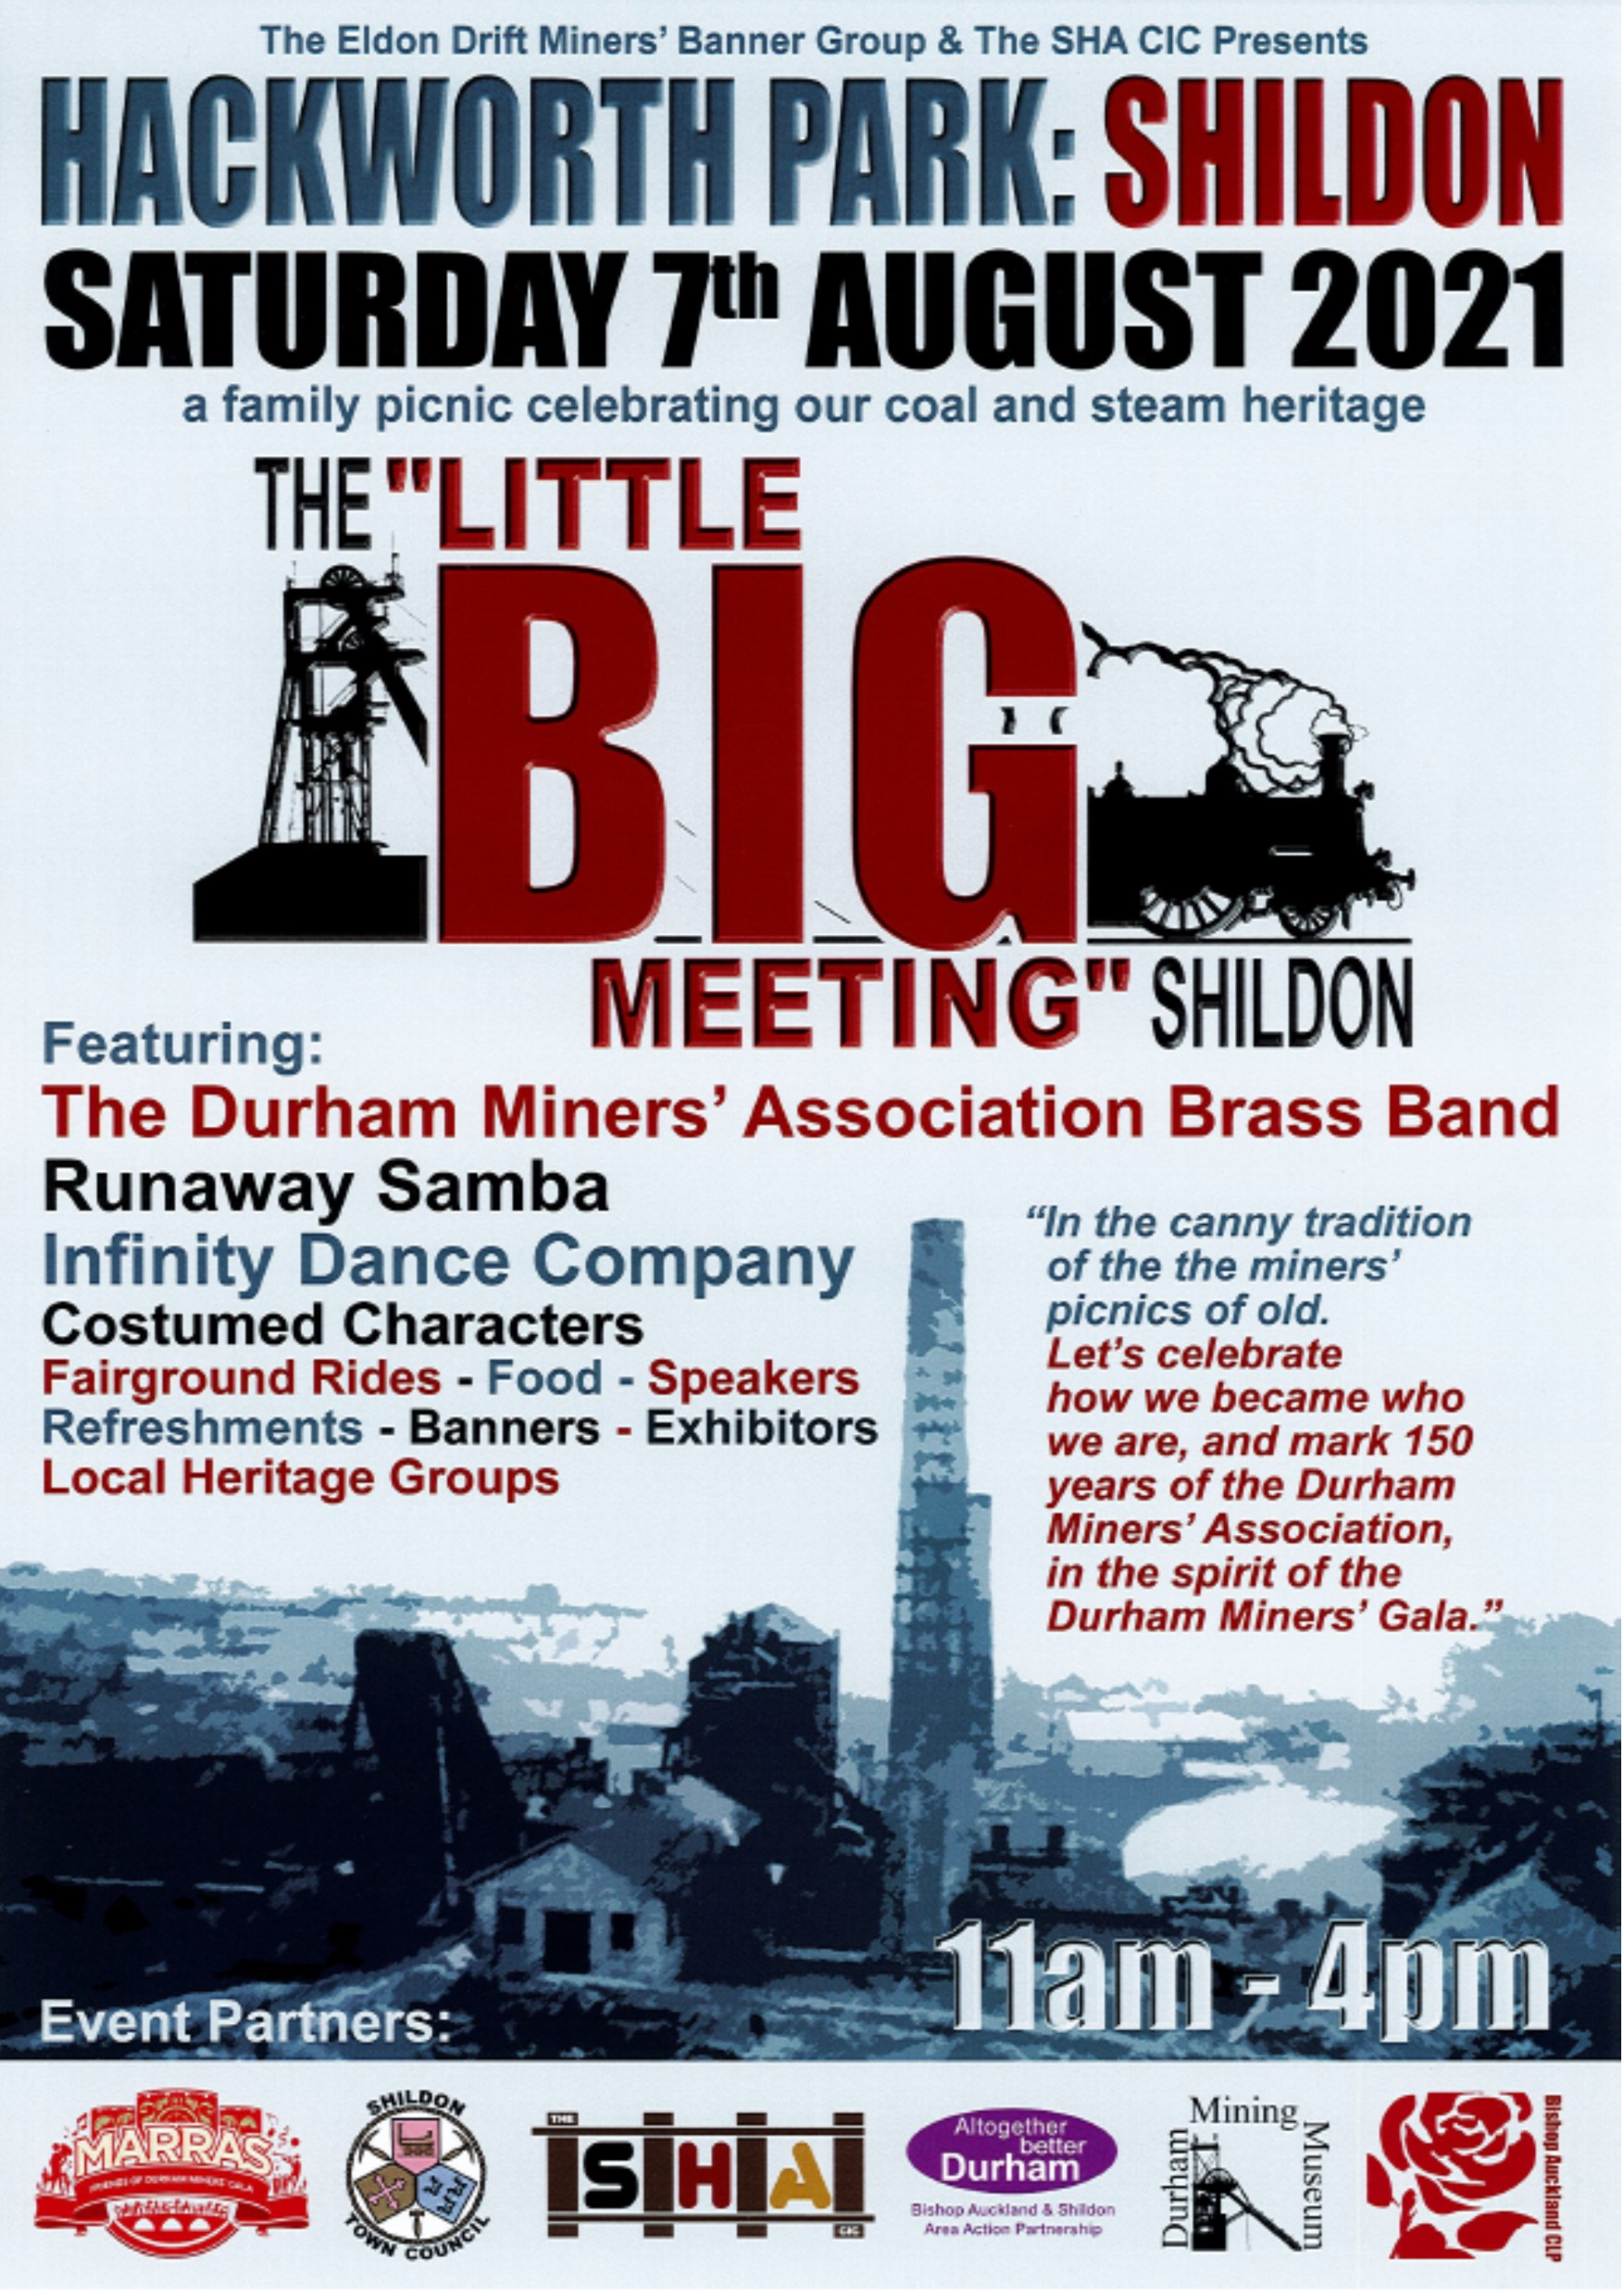 Poster promoting the Little Big Meeting, Shildon Saturday 7th August Hackworth Park 11.00am - 4.00pm